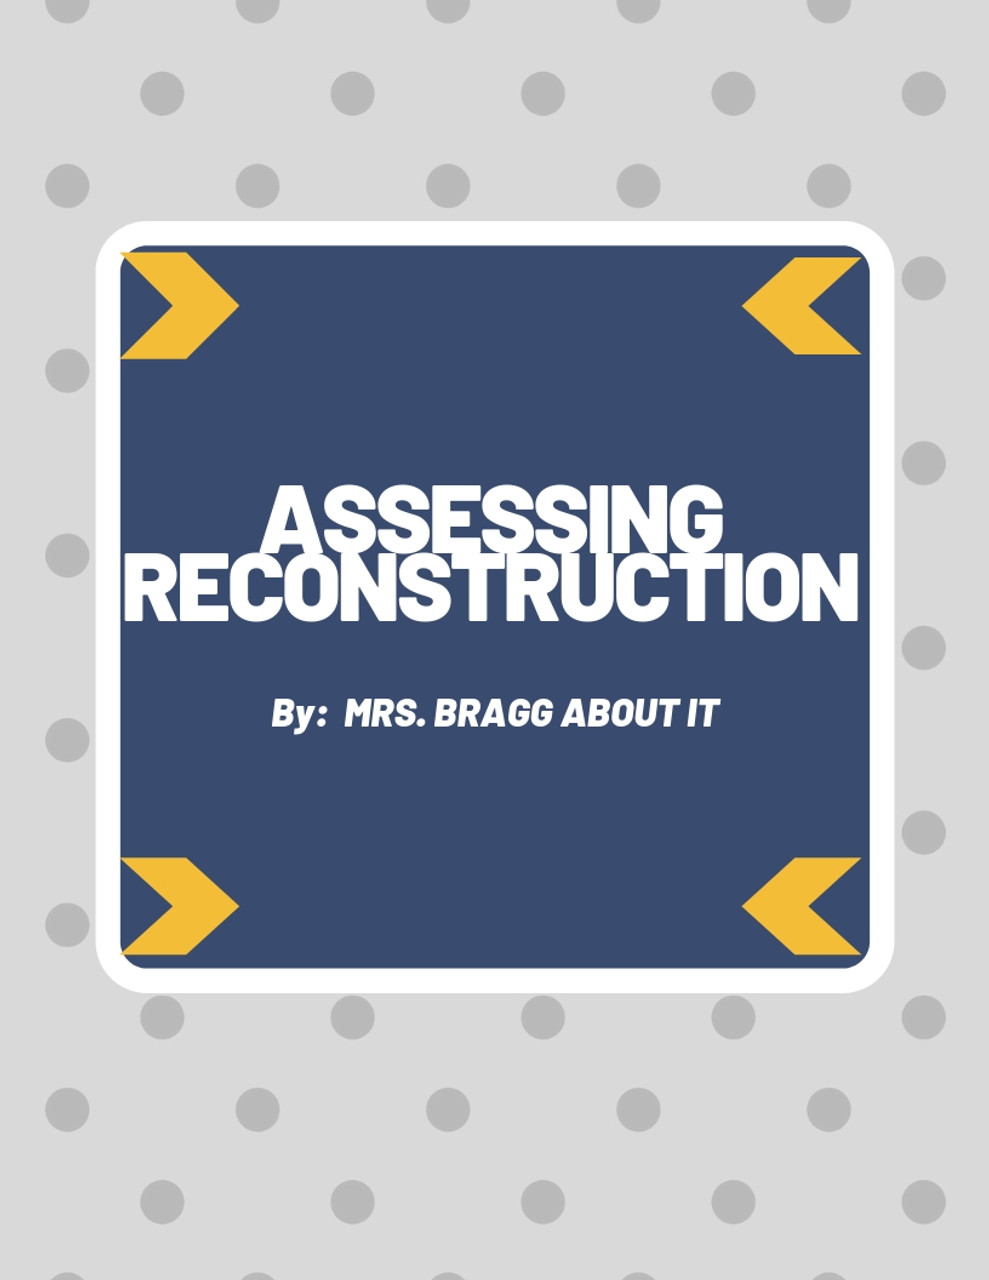 Assessing Reconstruction: Was it a Success or Failure?